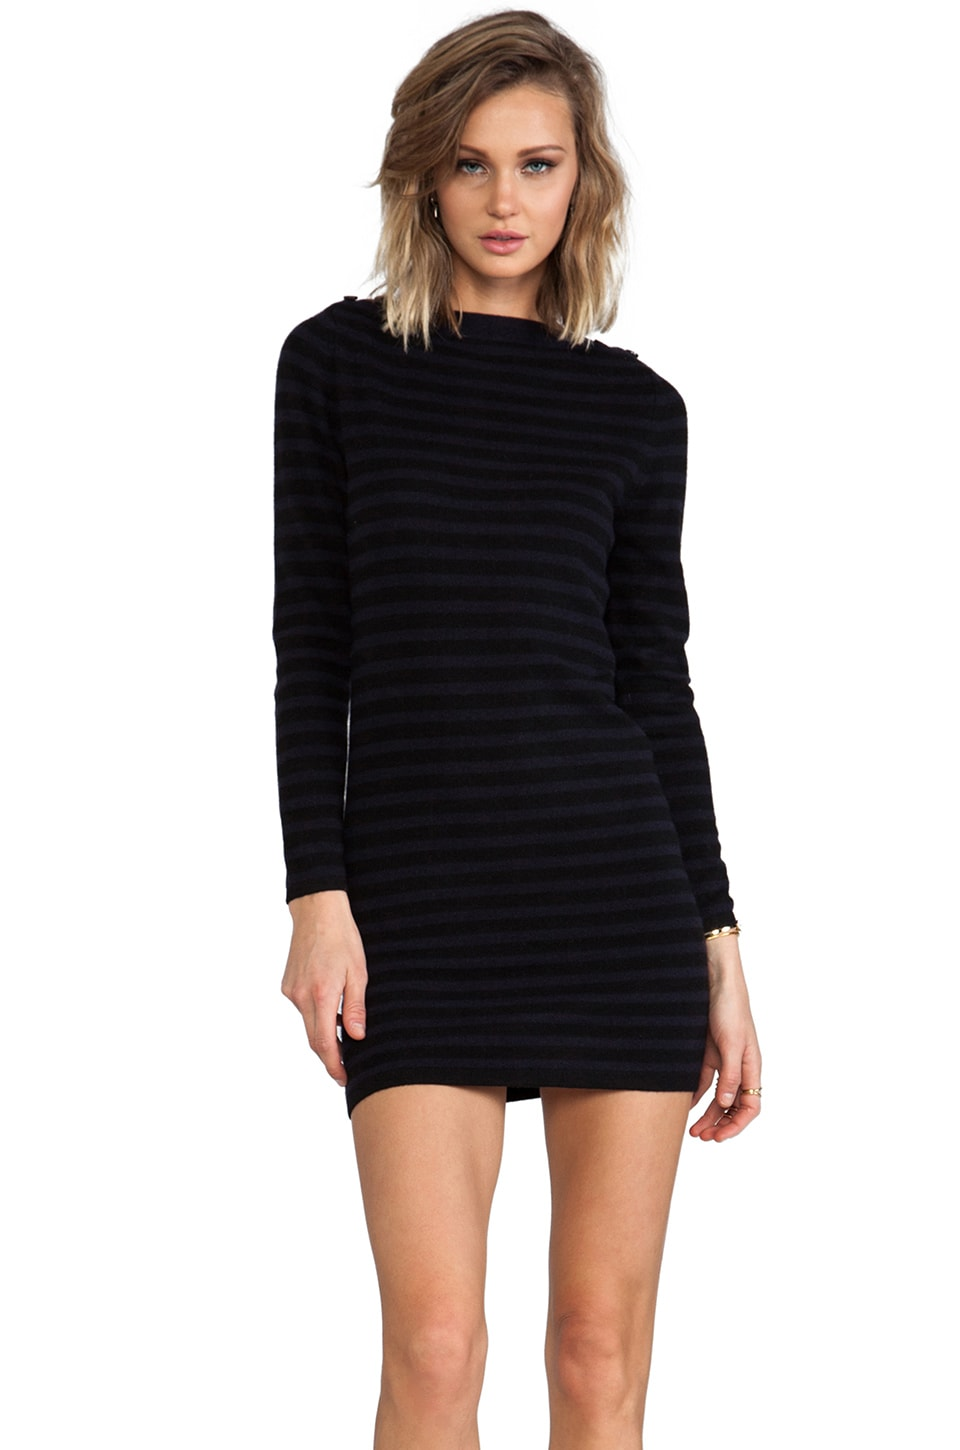 DemyLee Crosby Cashmere Sweater Dress in Black/Navy